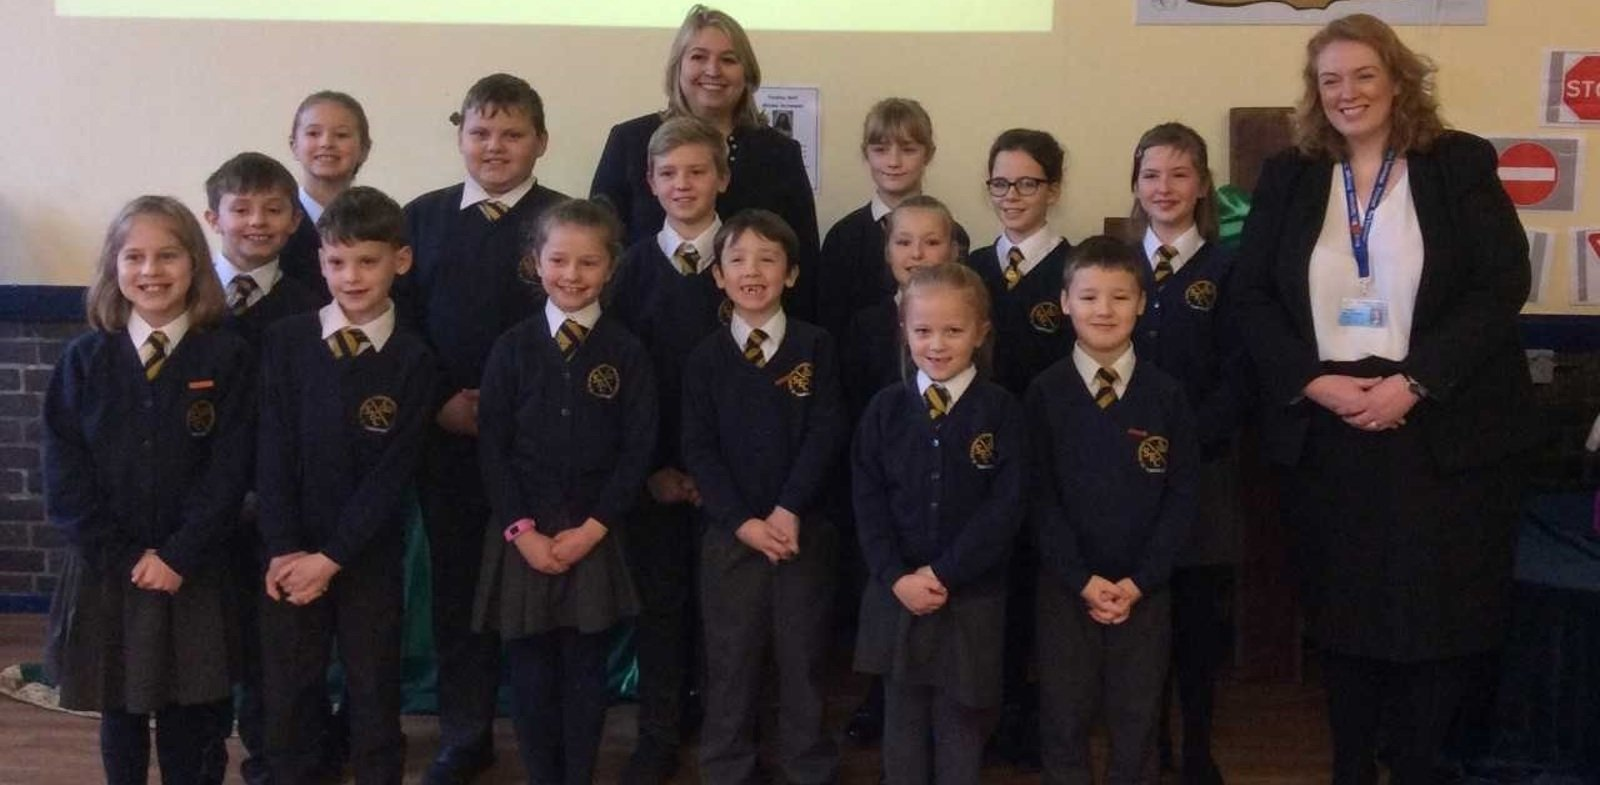 Staffordshire Moorlands school gains parliamentary recognition